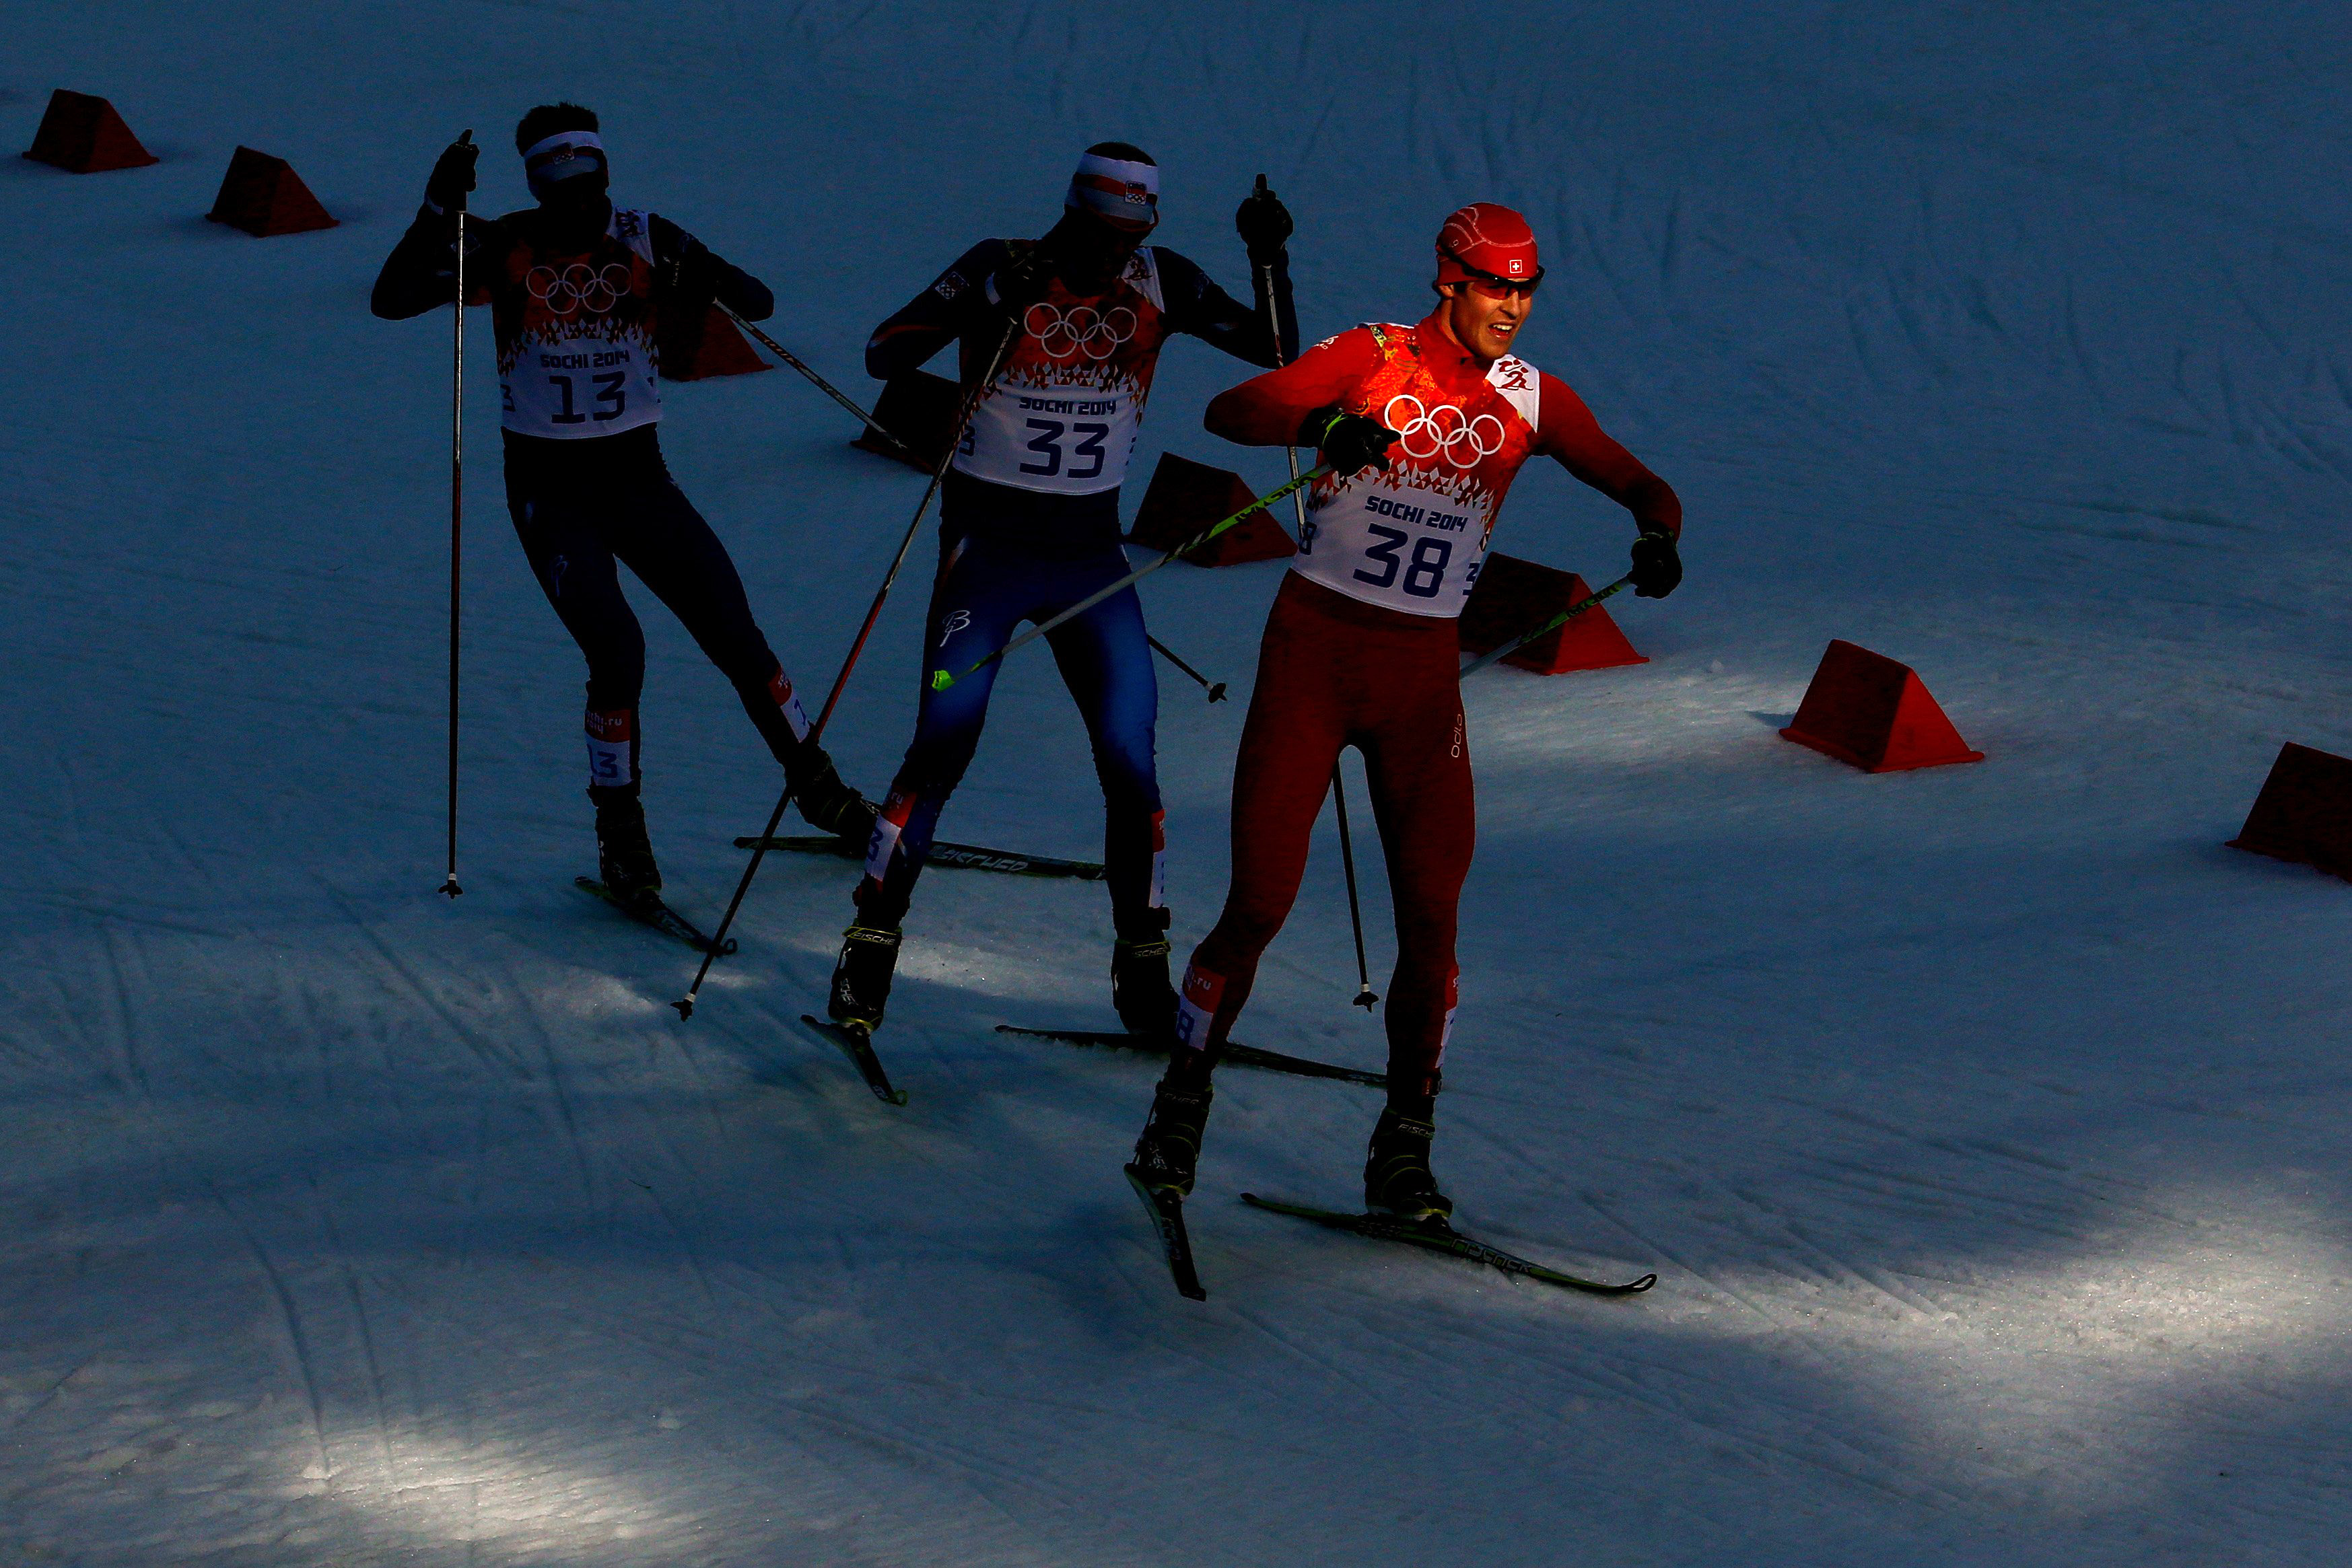 Tomas Portyk of the Czech Republic, Tomas Slavik of Czech Republic and Tim Hug of Switzerland in action during the Nordic Combined Individual Gundersen Normal Hill and 10km Cross Country.